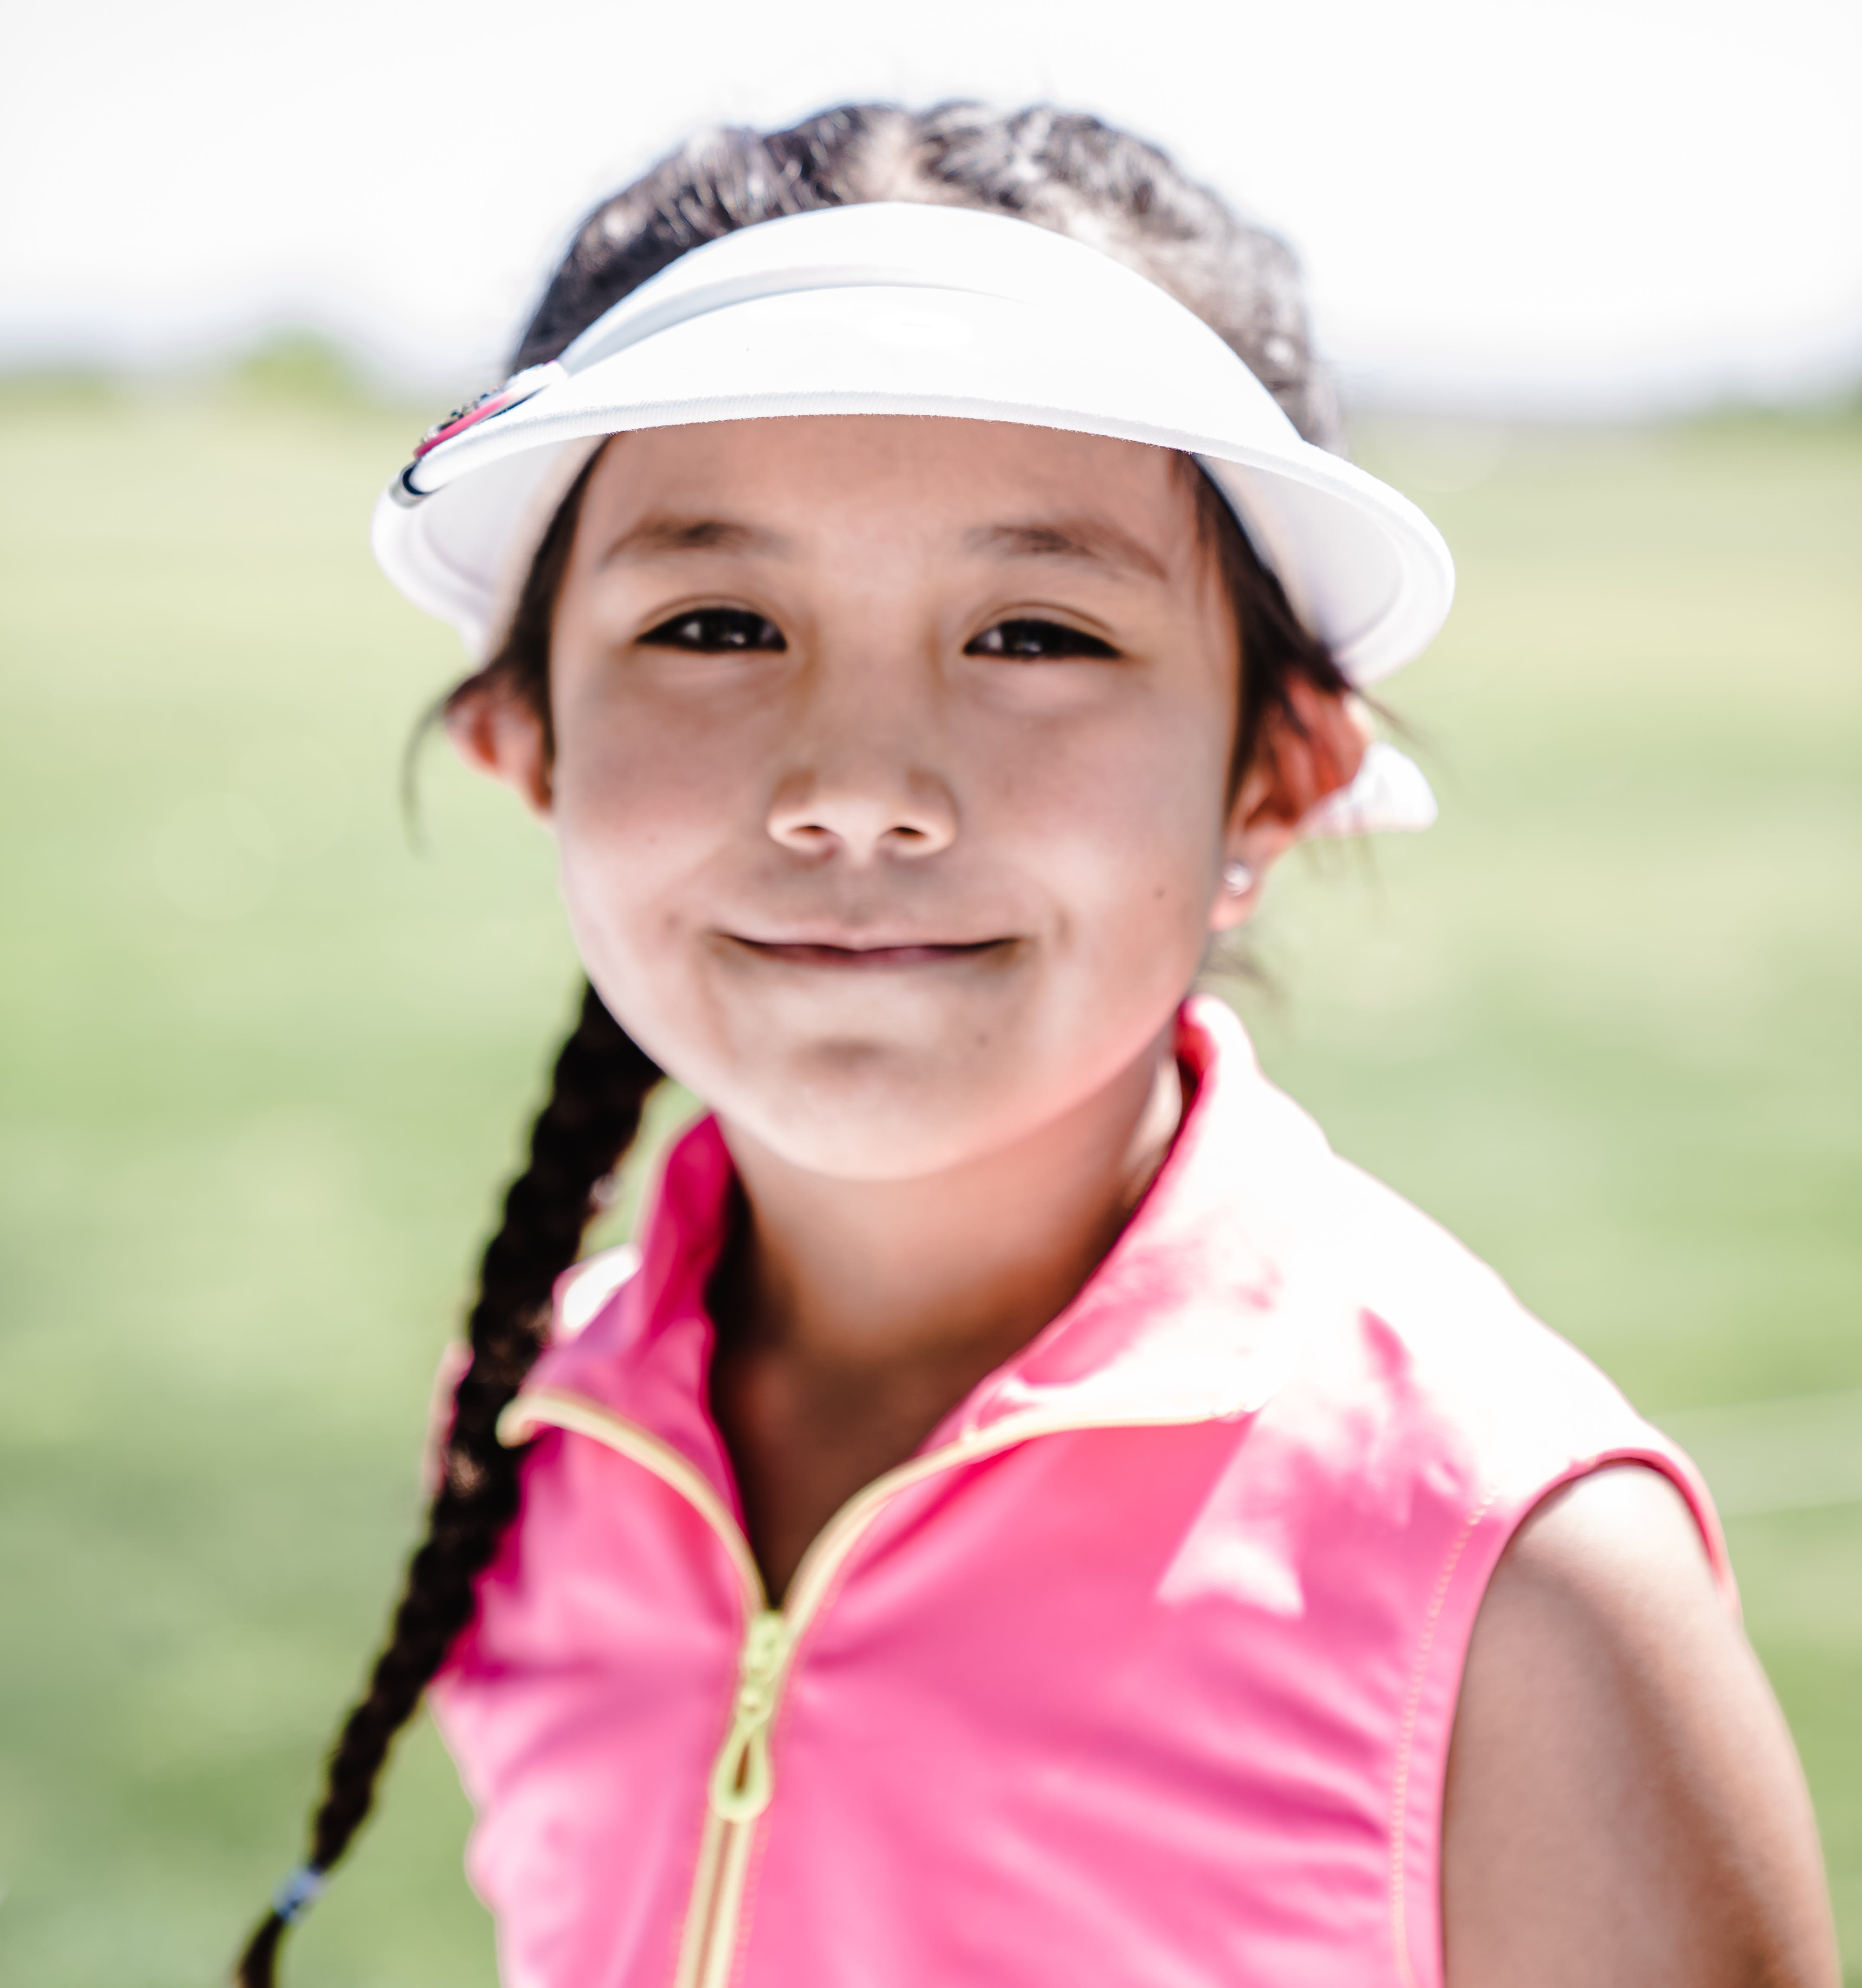 Girl Wearing White Visor Hat And Pink Zip-up Vest